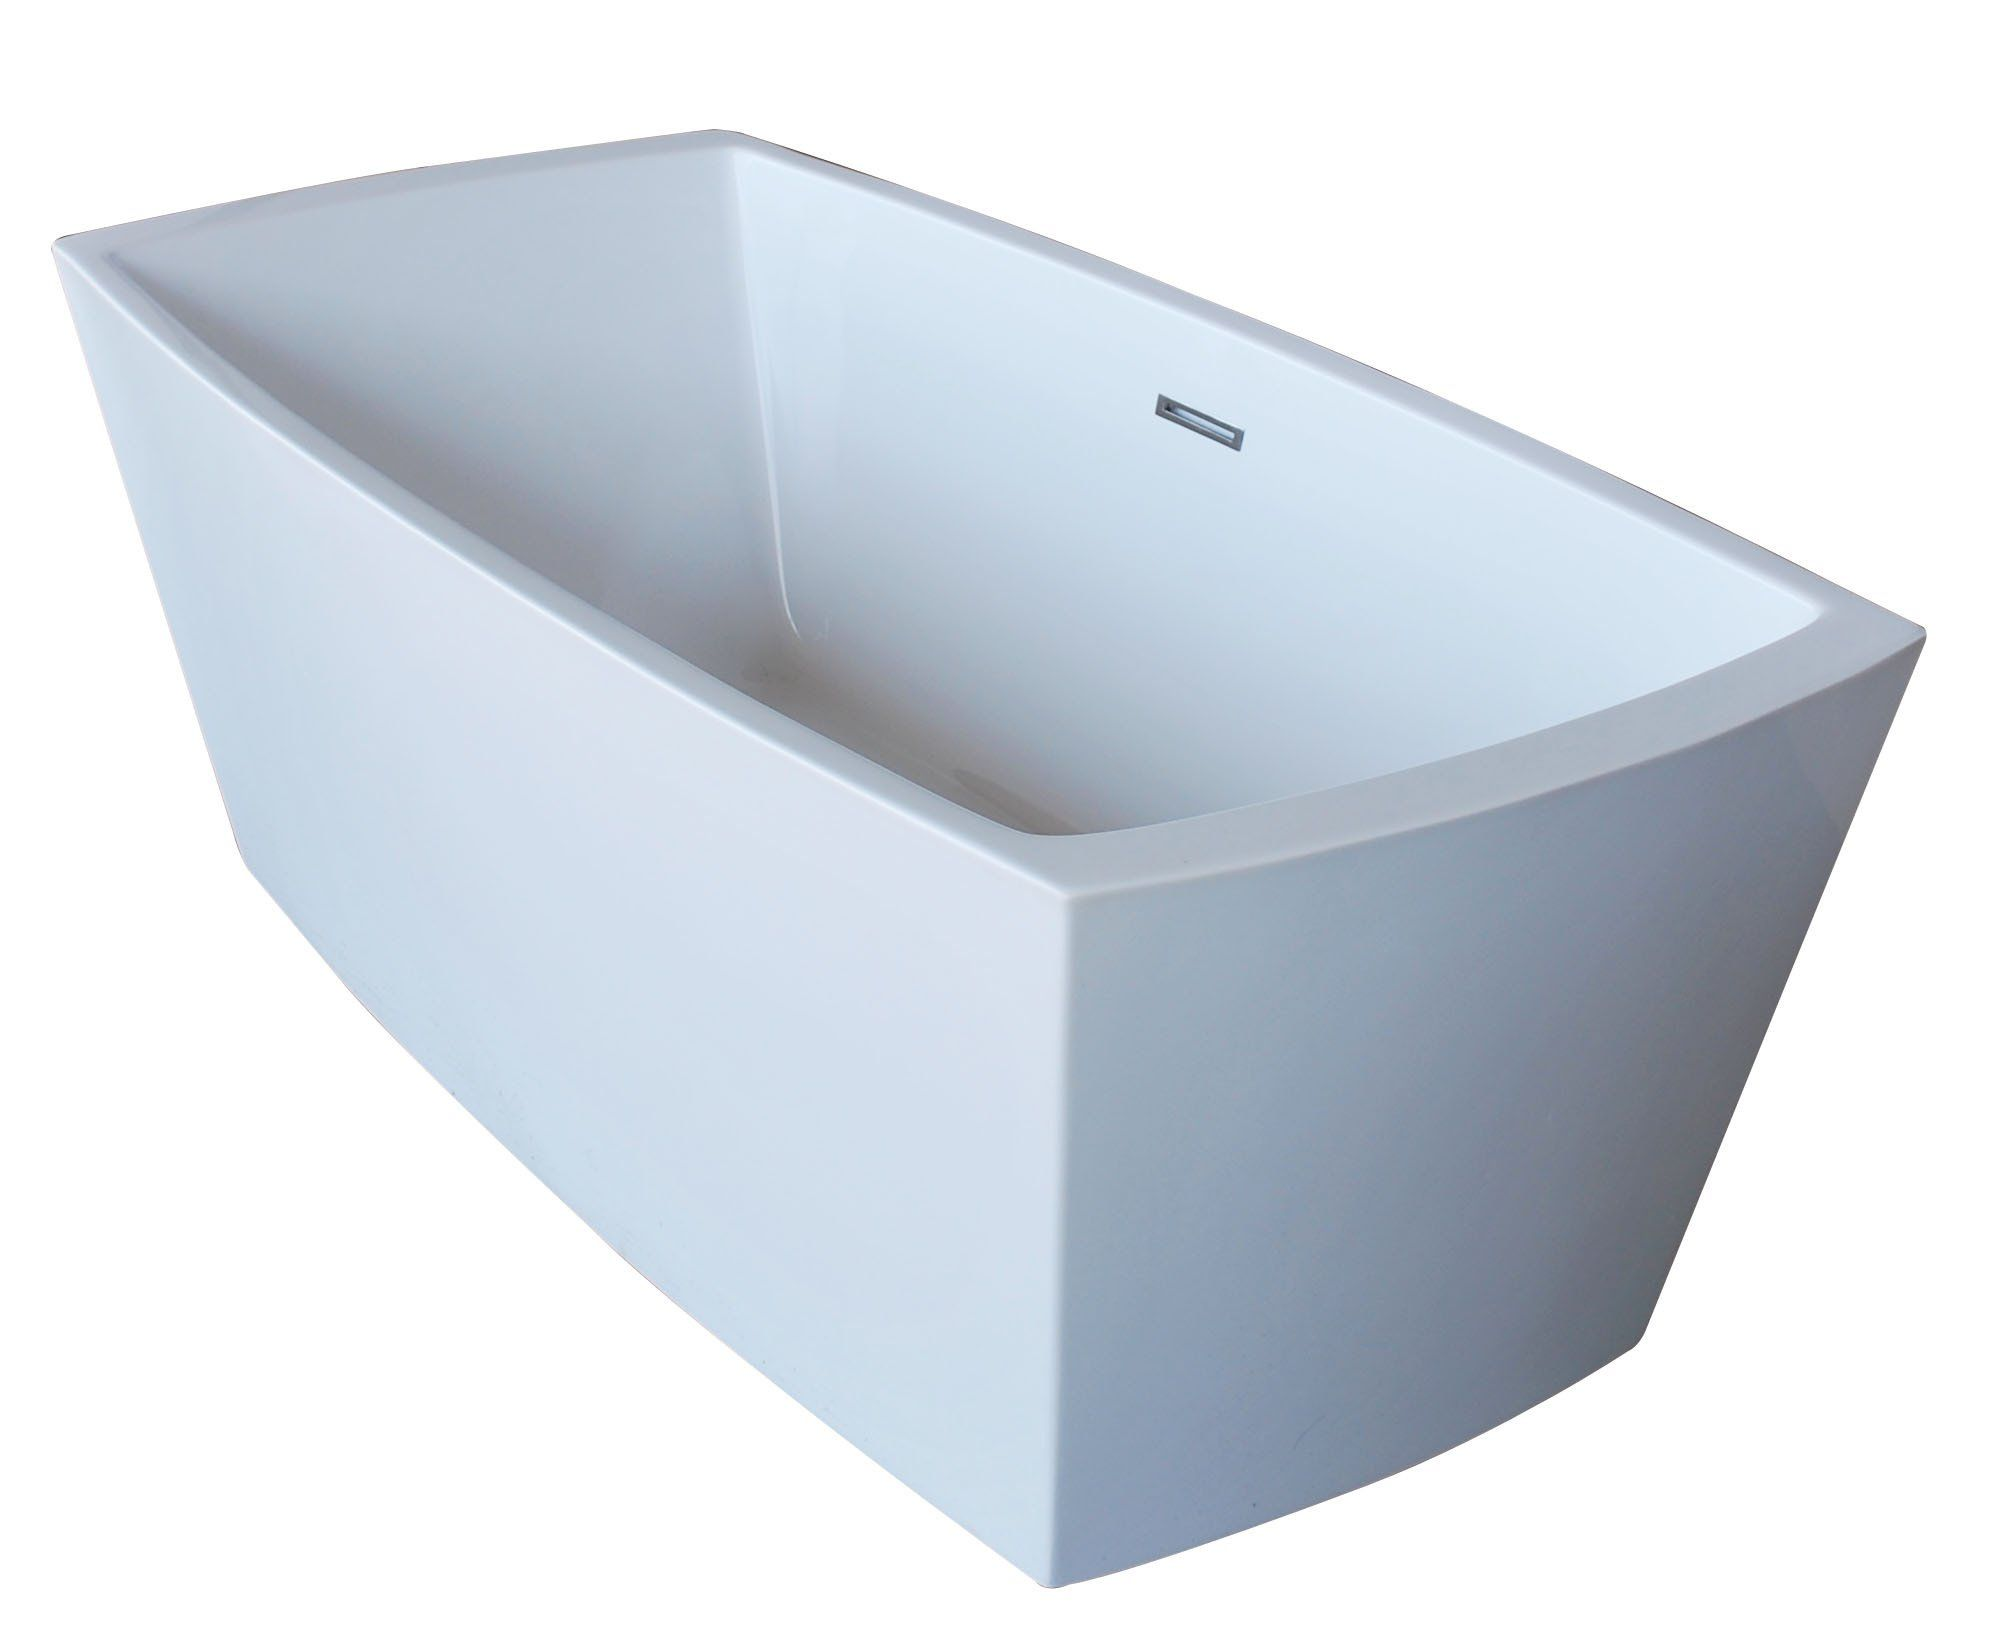 ANZZI Arthur FT-AZ003 FreeStanding Bathtub | Products